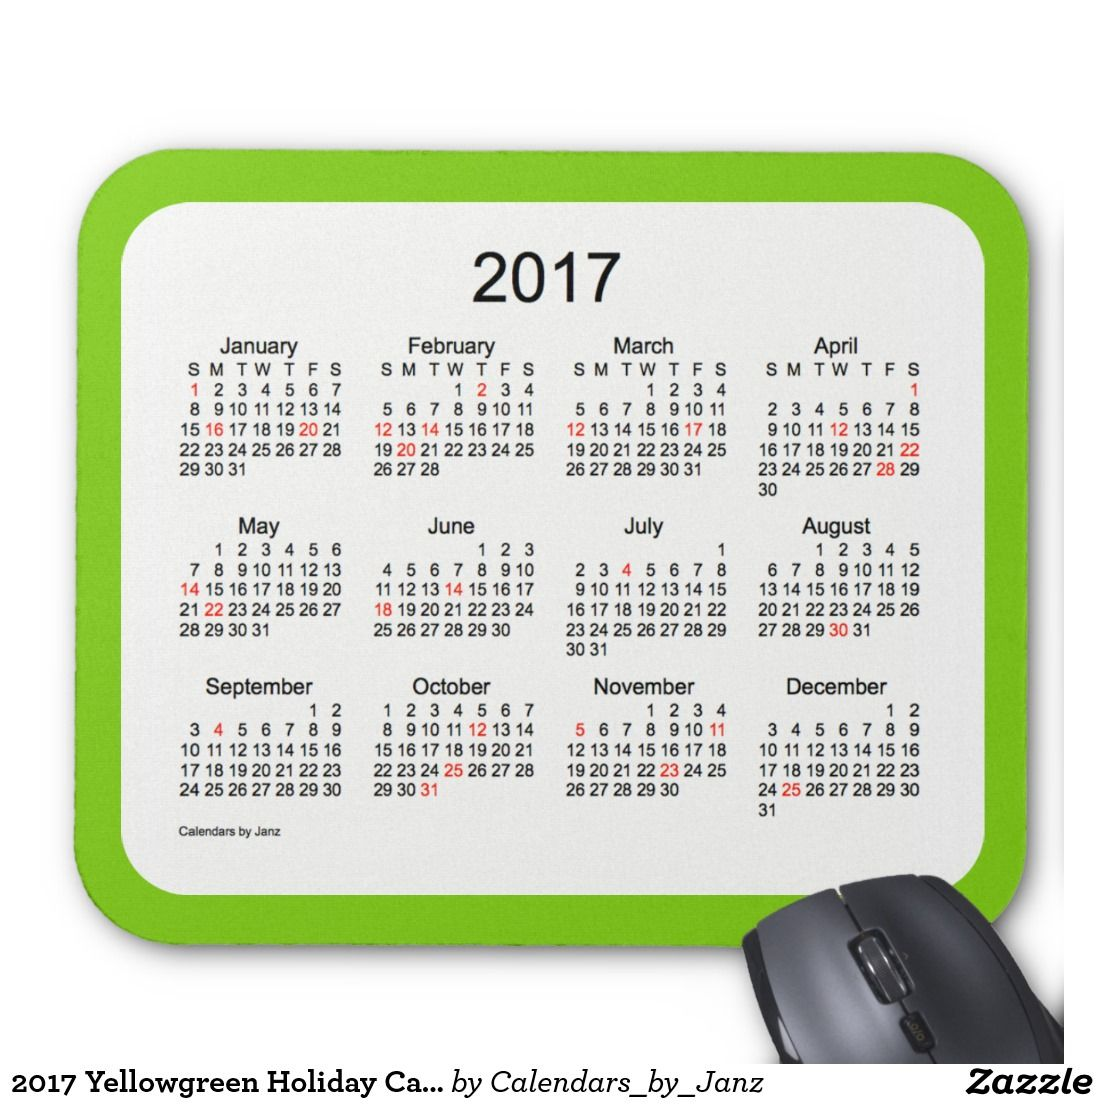 2017 Yellowgreen Holiday Calendar by Janz Mouse Pad